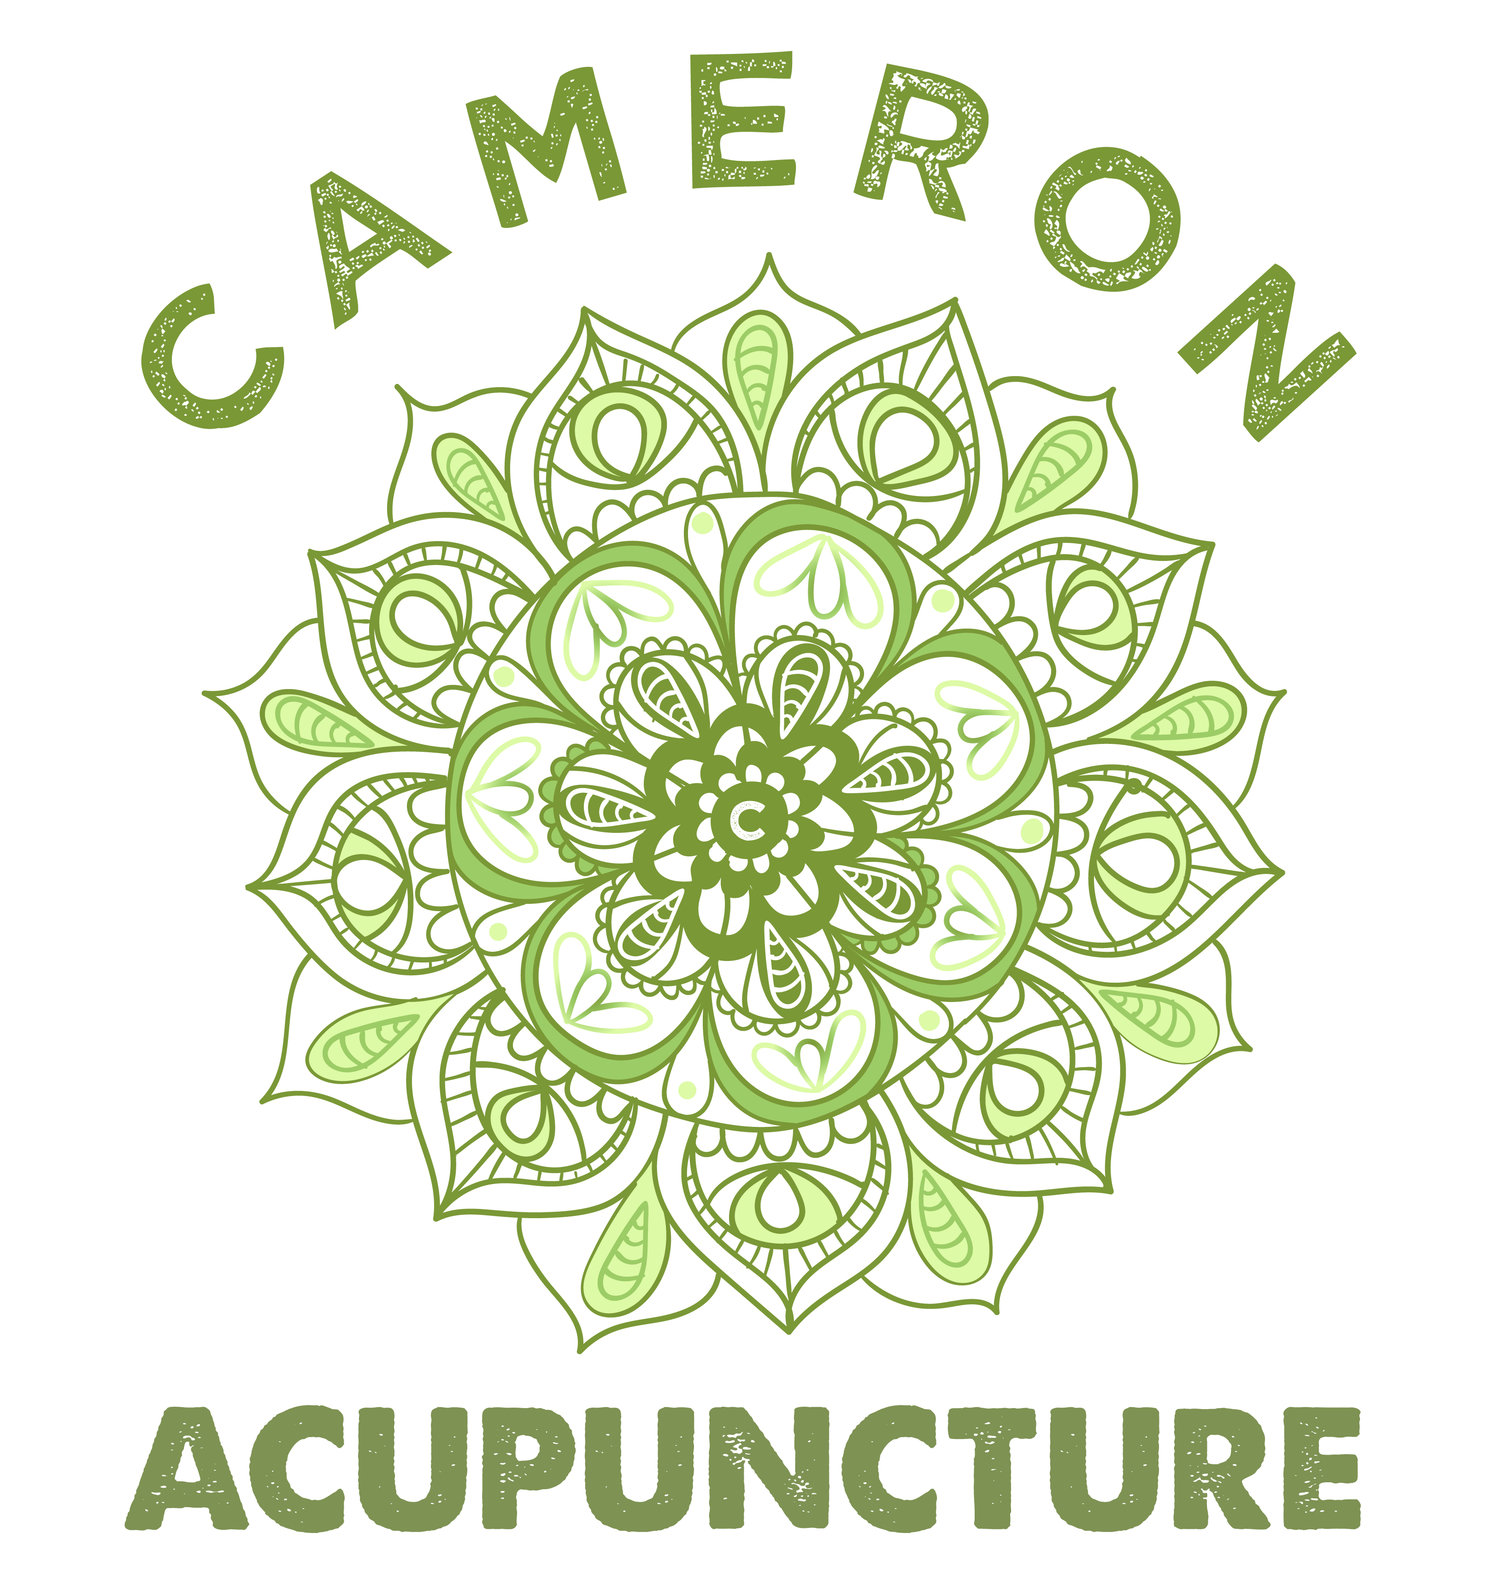 Cameron Acupuncture